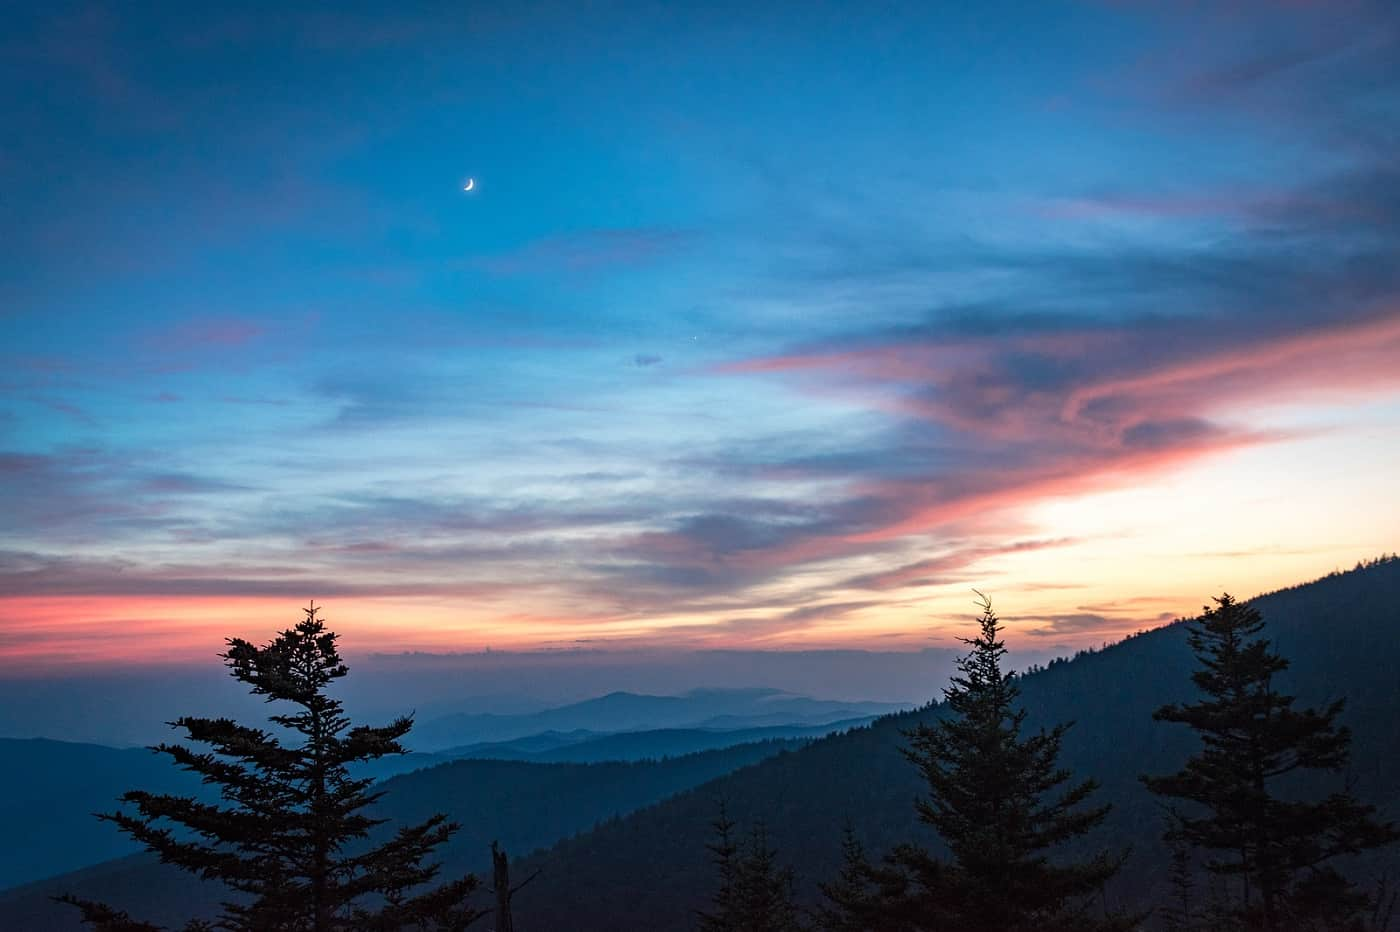 Sunset at the Great Smoky Mountains National Park